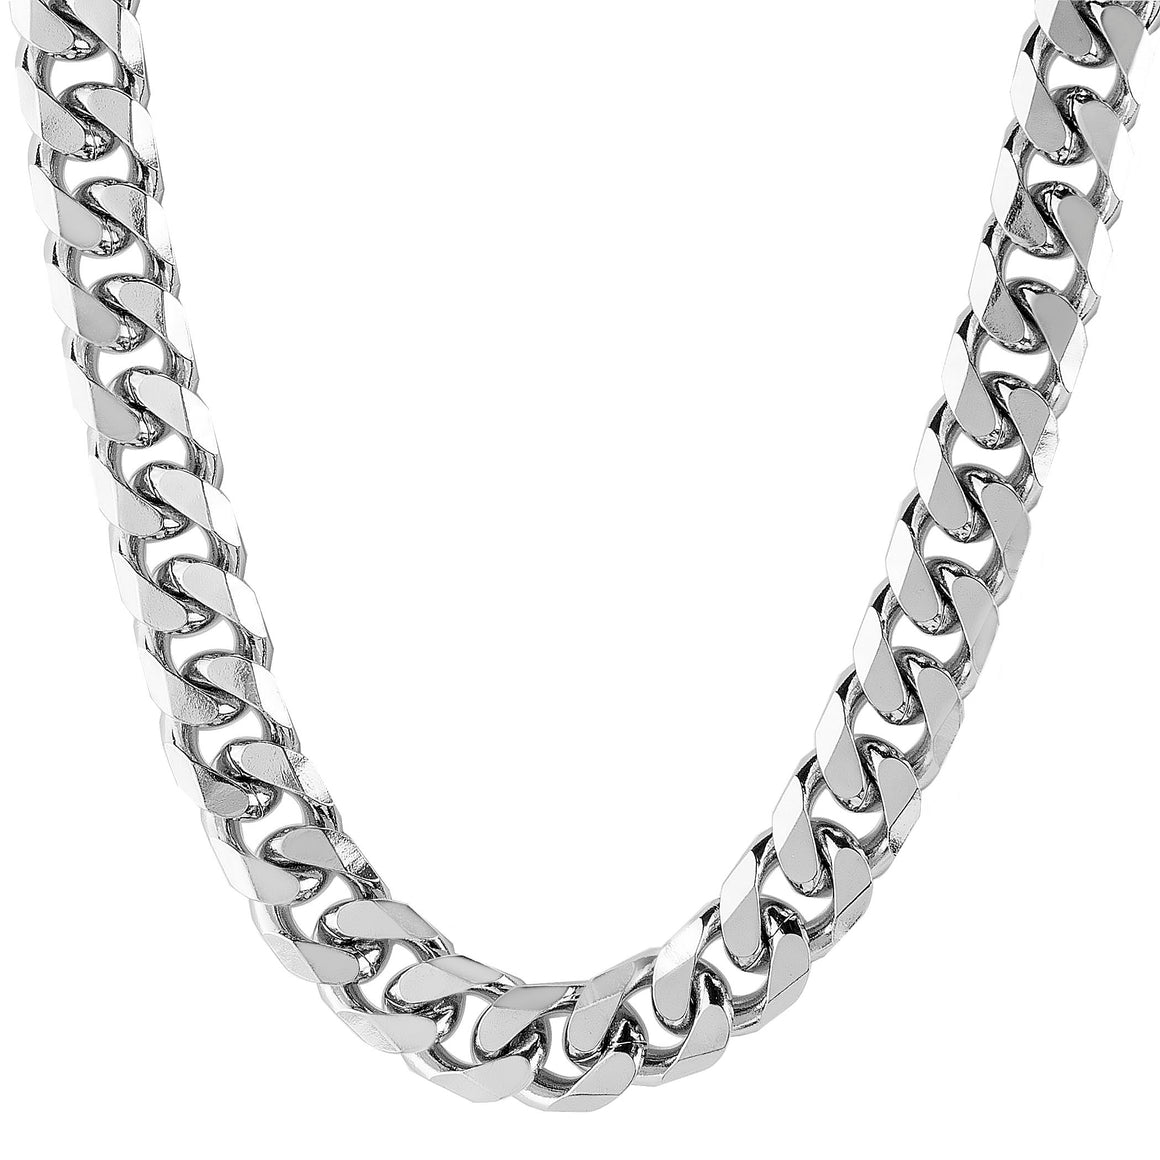 Crucible Men's Stainless Steel Polished Beveled Curb Chain Necklace